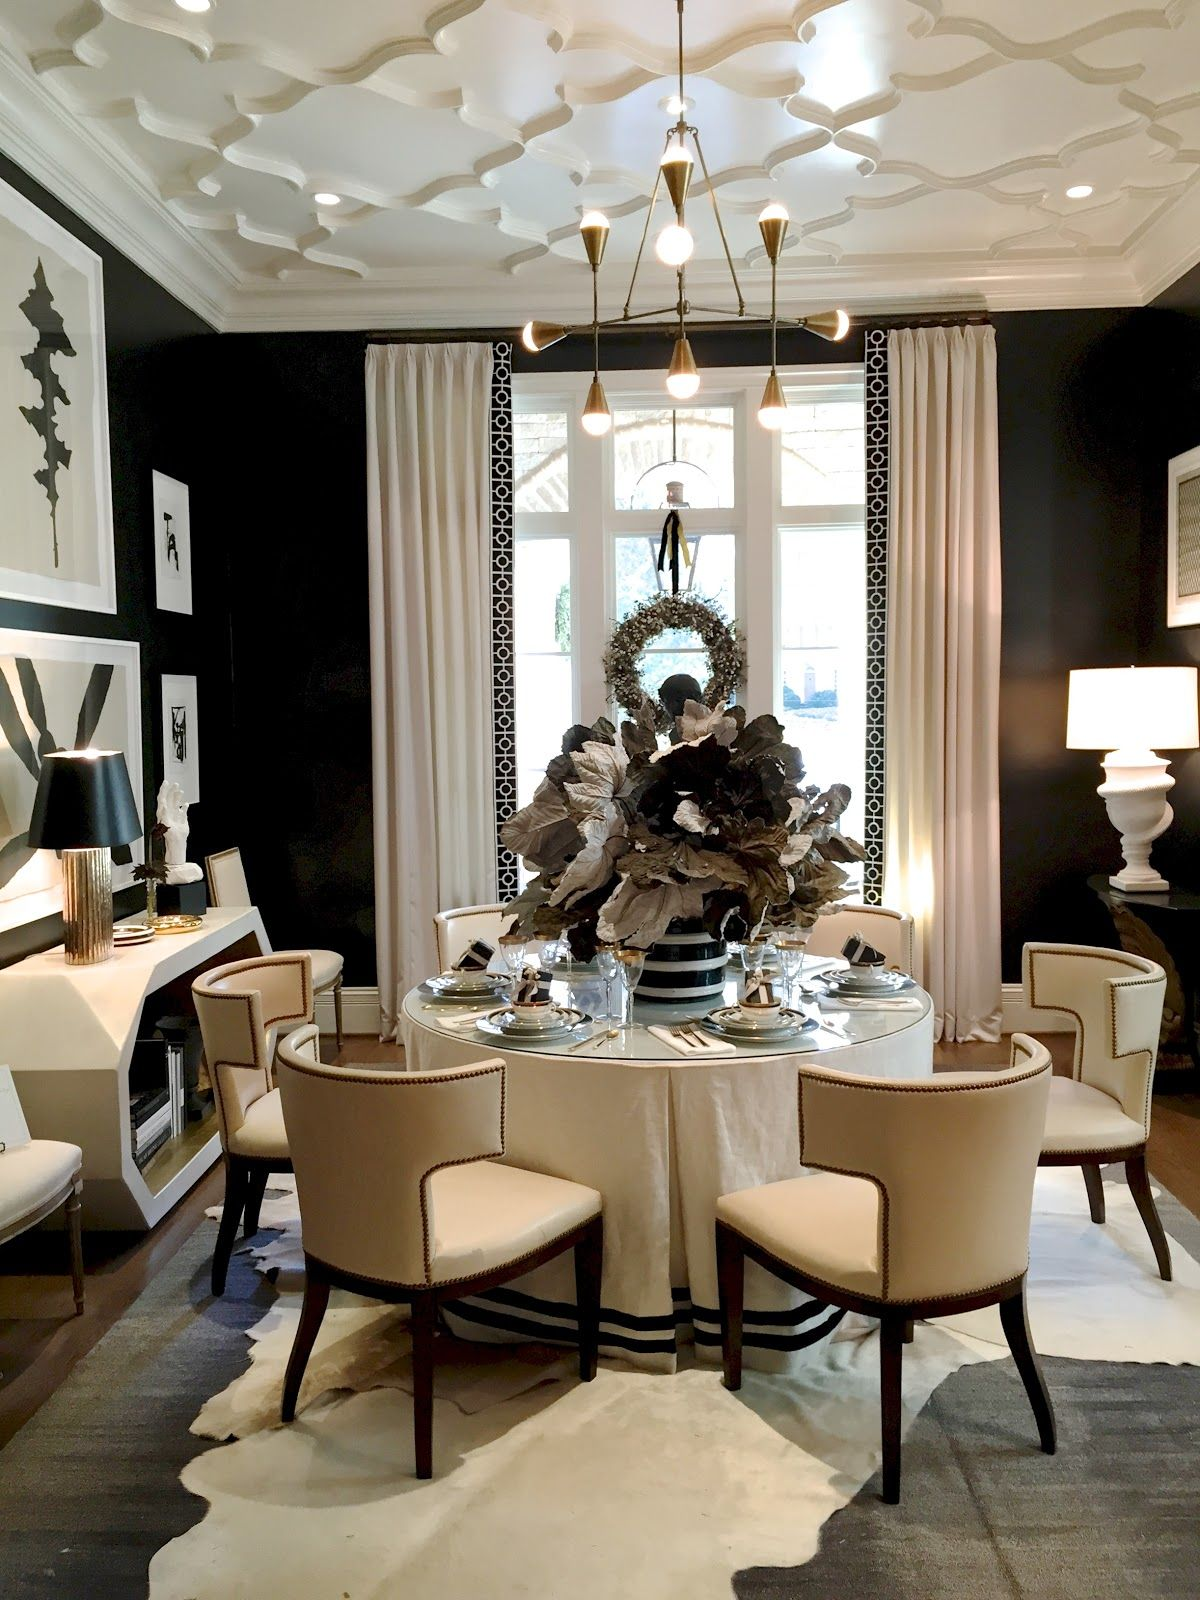 Table Skirt With Black Trim Is What I Want For My Dining Room Fair Dining Room Wall Trim Inspiration Design